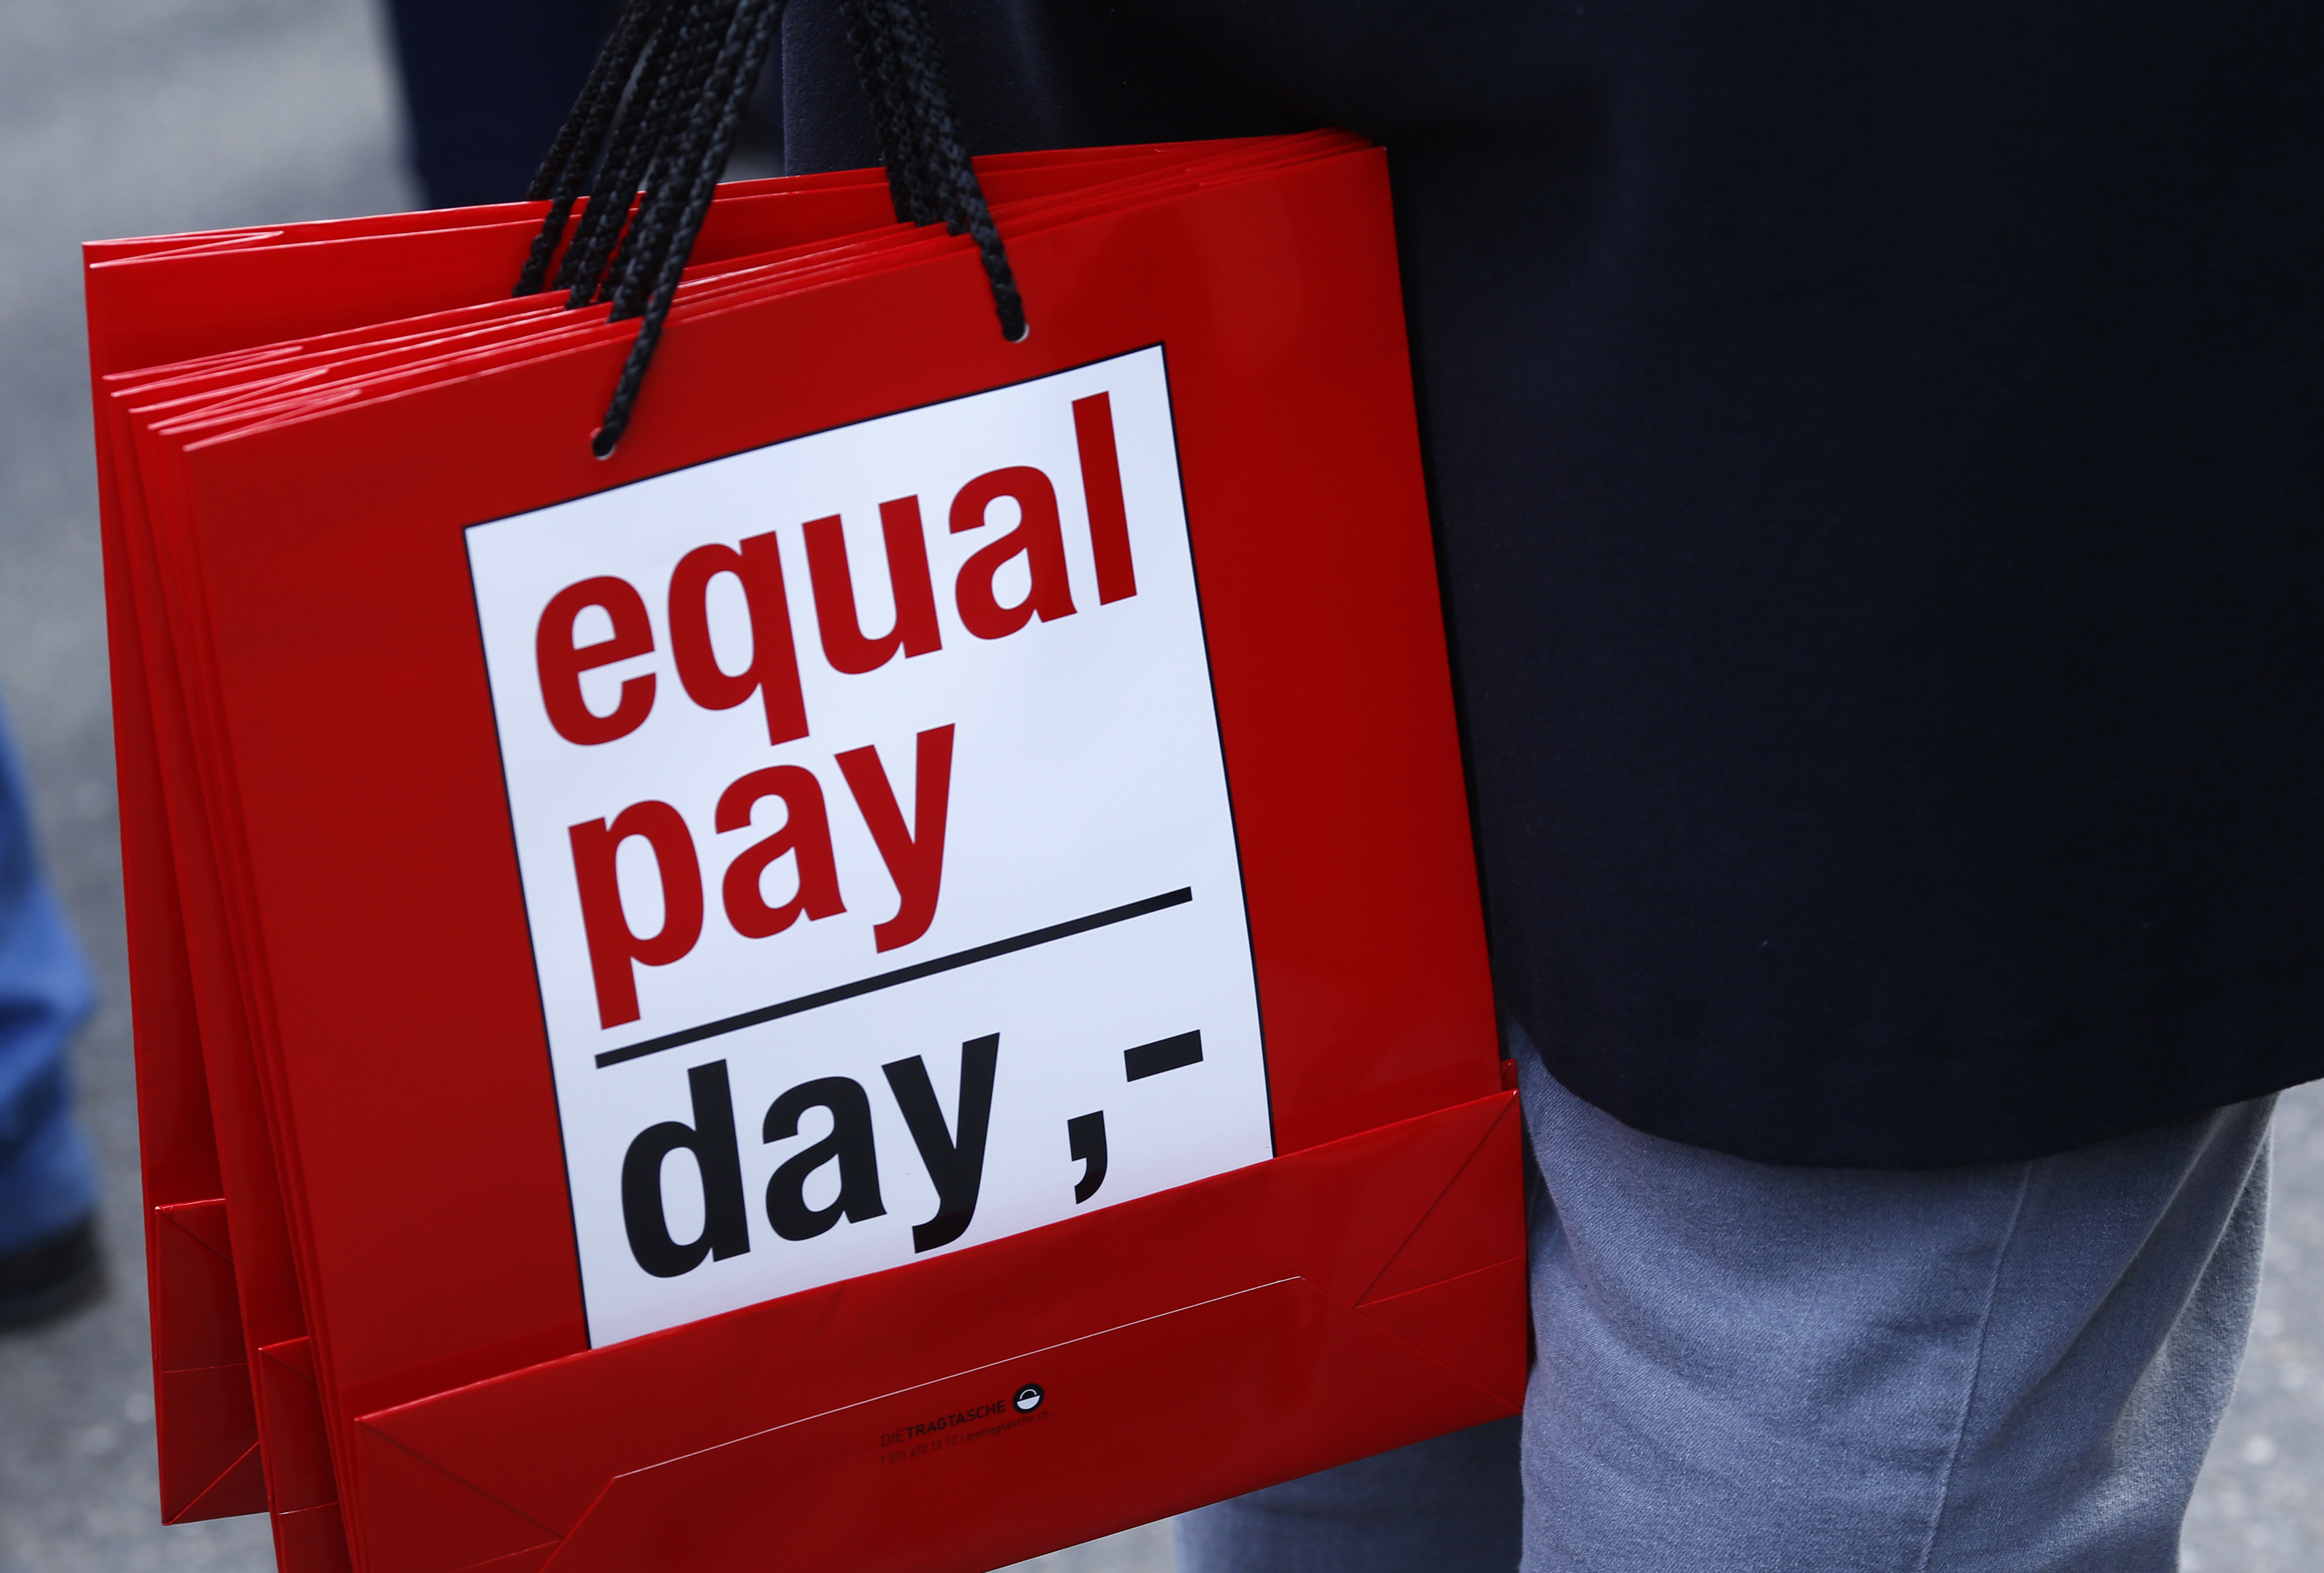 Equal pay bags